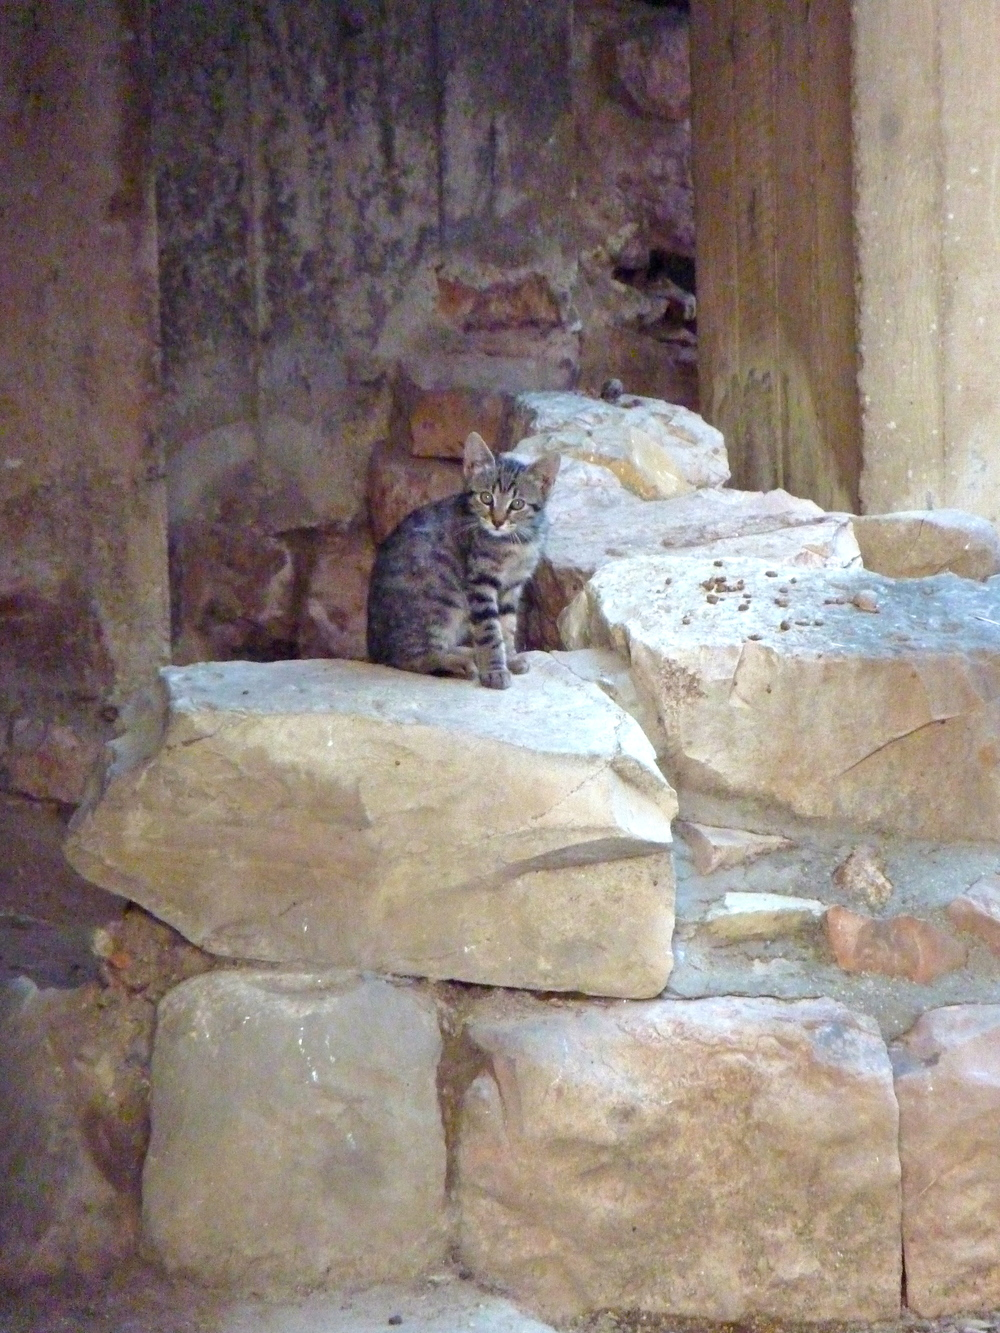 Kittens that live in Roman Ruins.